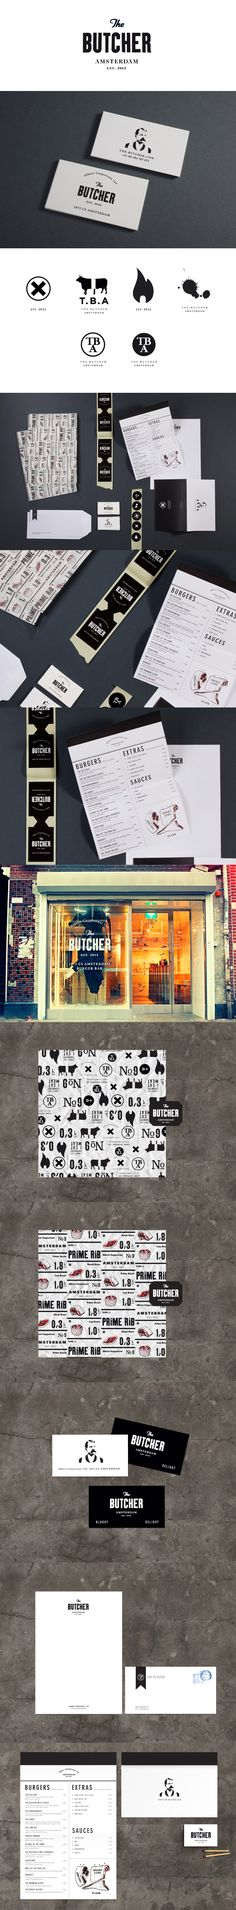 Identity / koniakdesign / the butcher